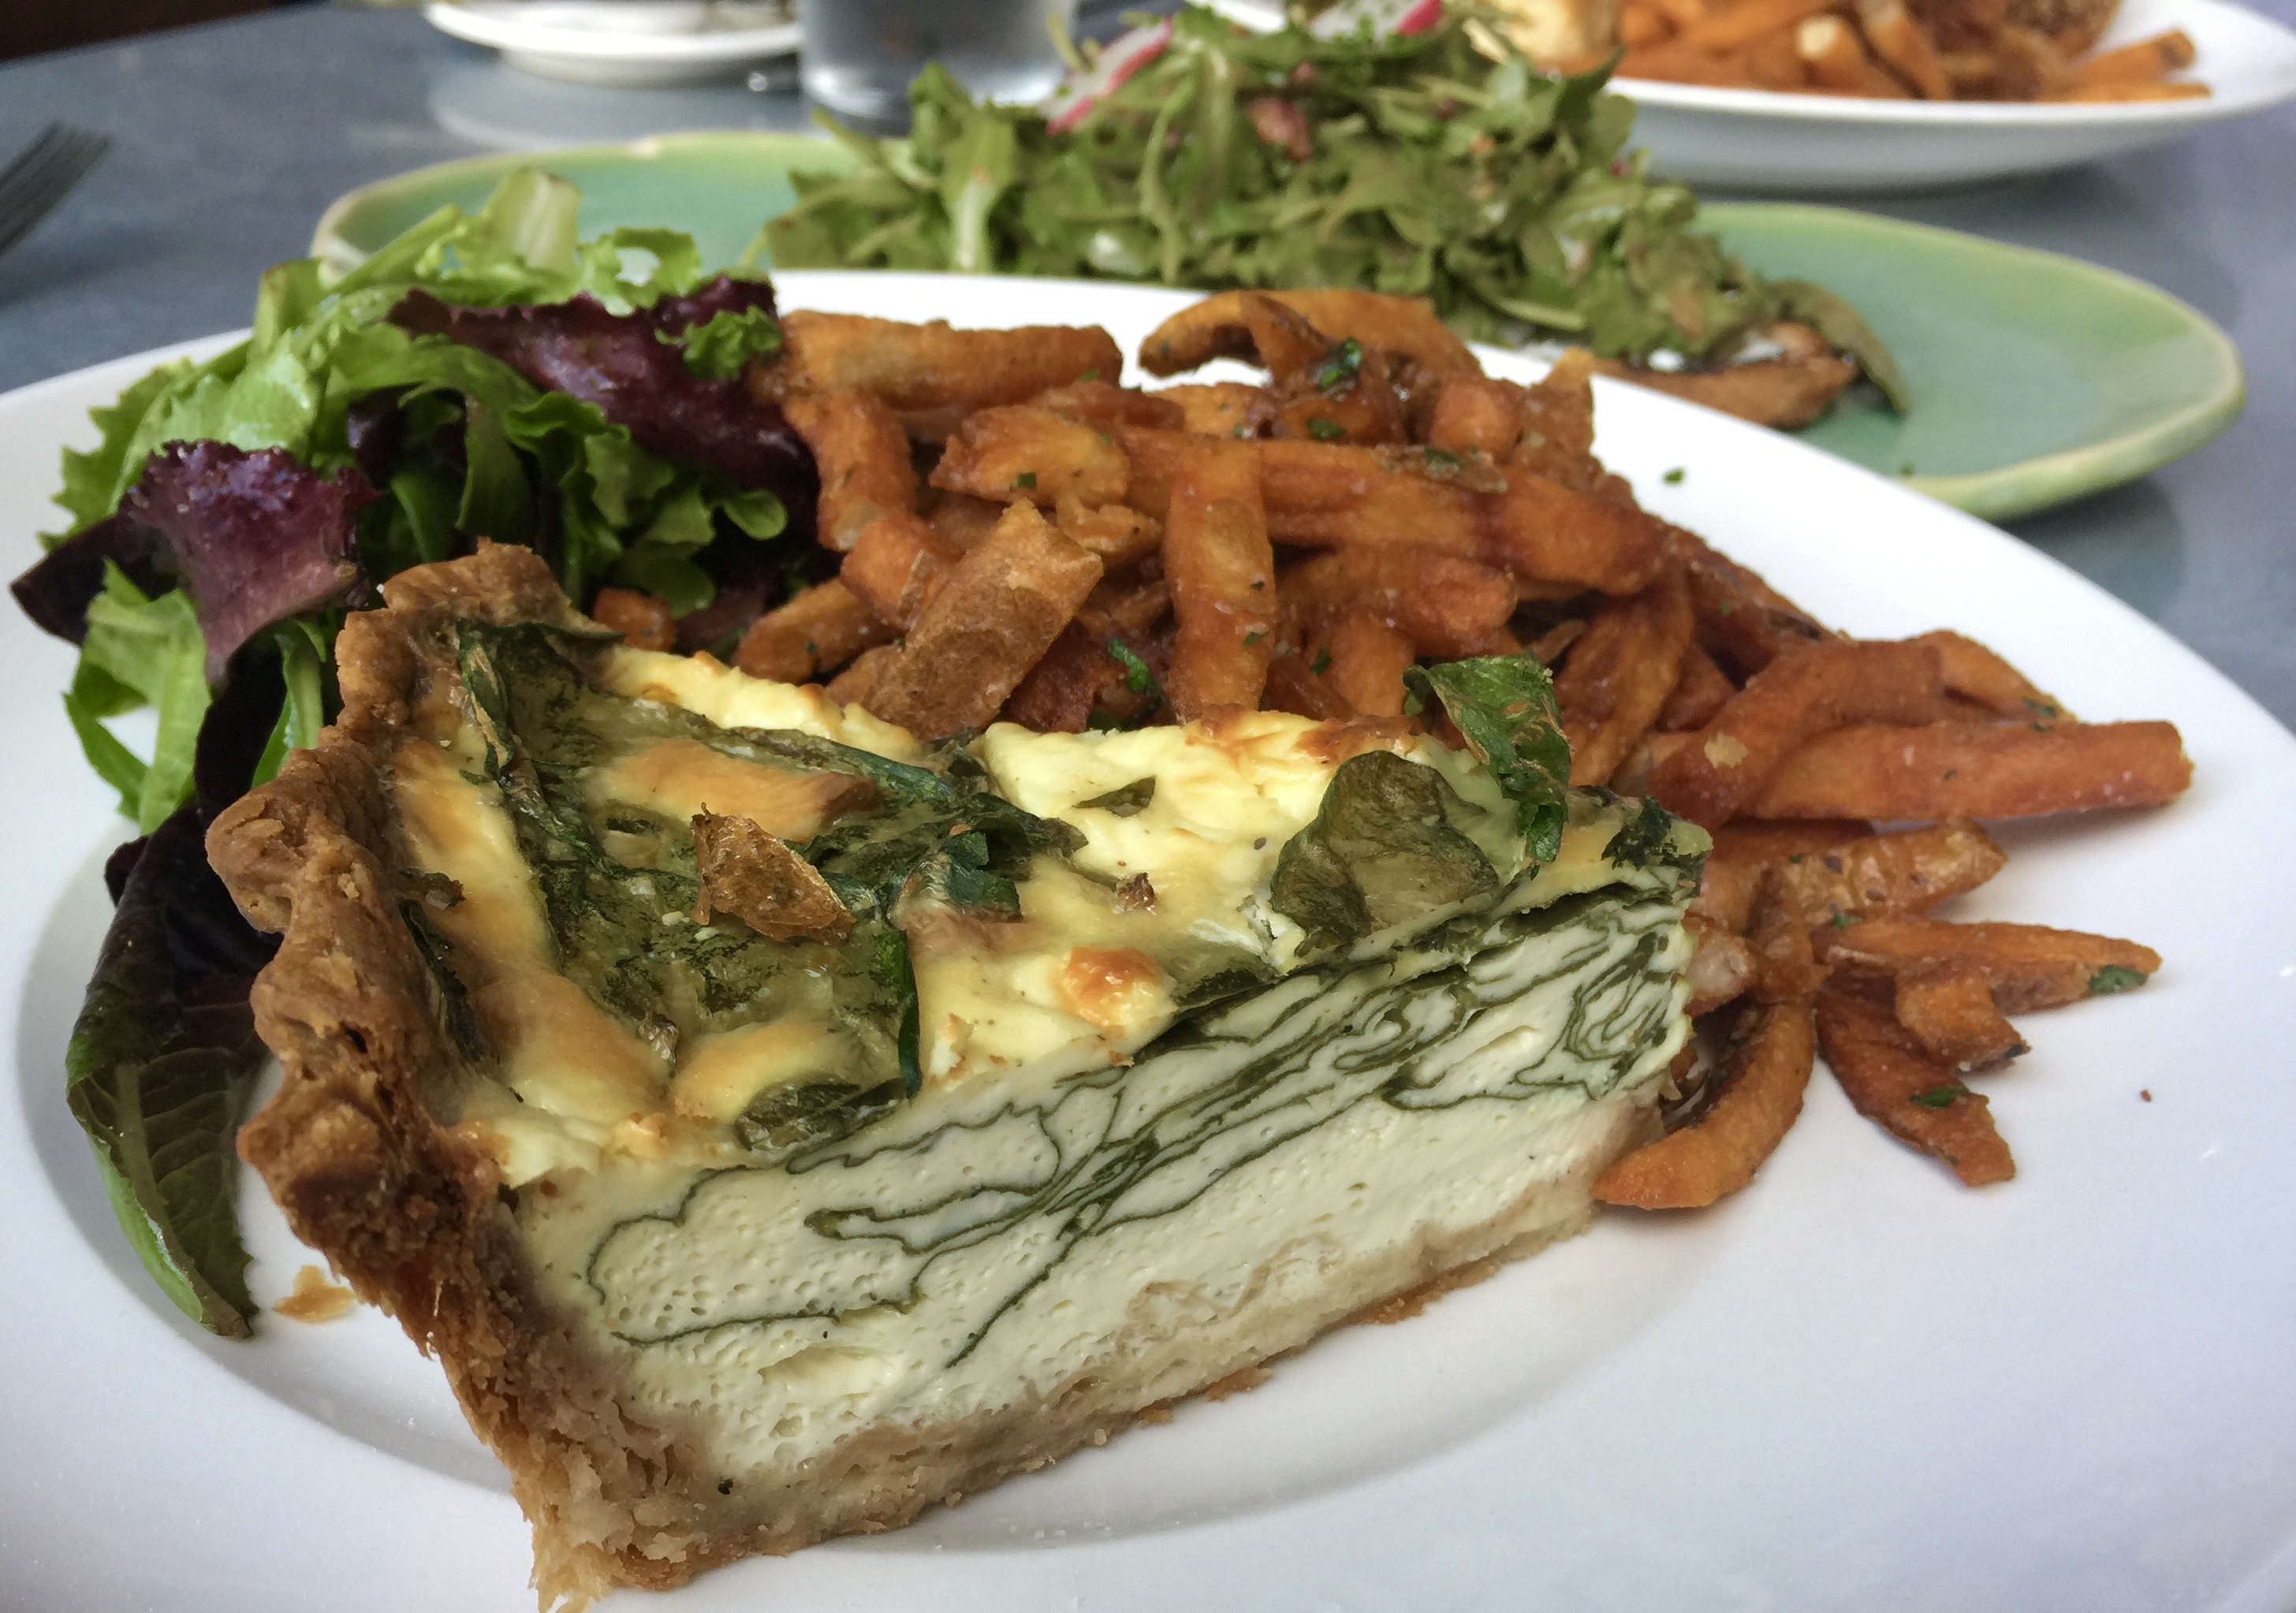 Brunch quiche, fries, and salad from Josephine's. Photo by Melody Pittman.